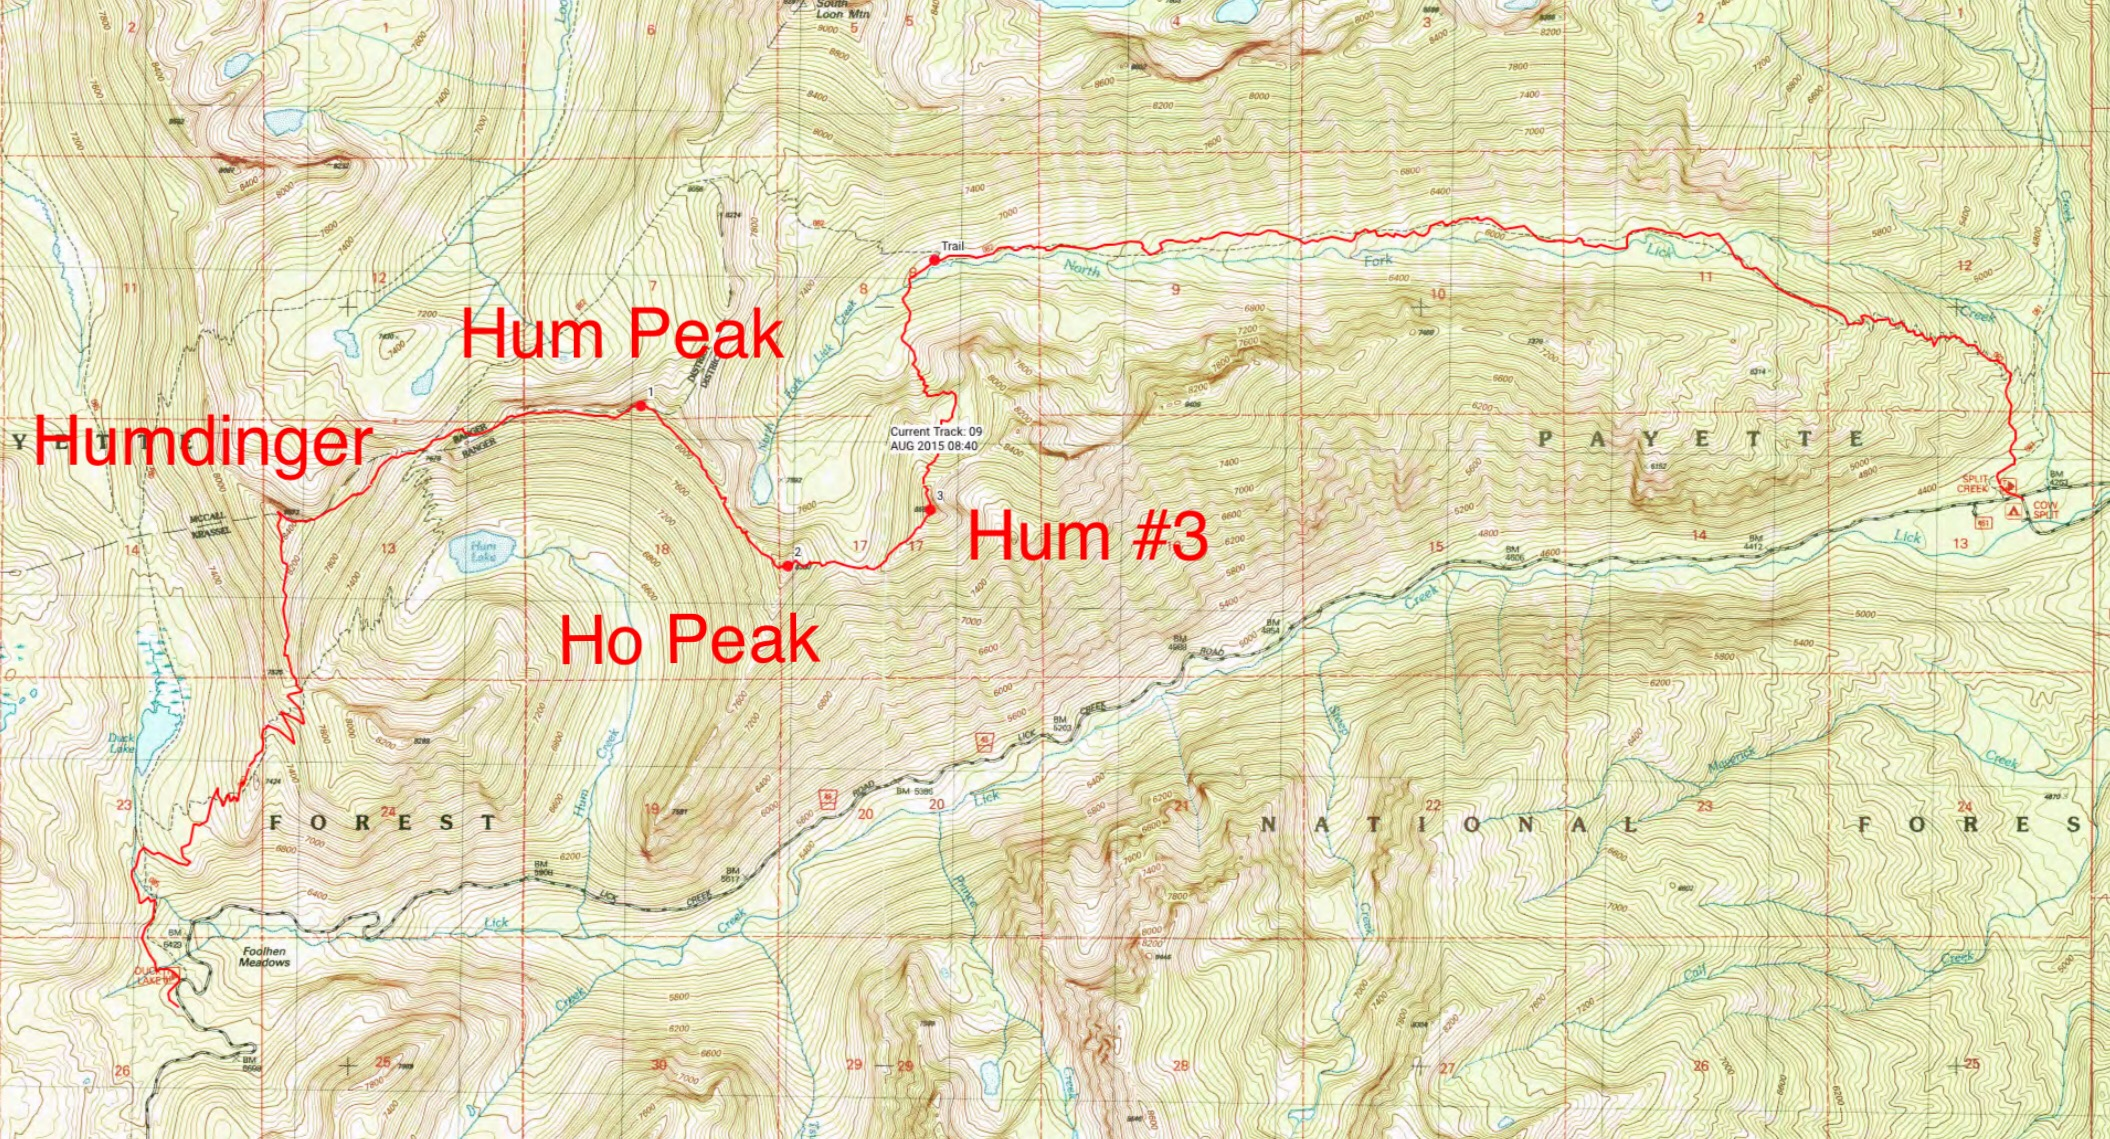 The GPS track for John Platt and John Fadgen's 2015 traverse of four of the six Hum Ridge peaks. Their route covered 15 miles with 4,700 of gain and even more elevation loss.